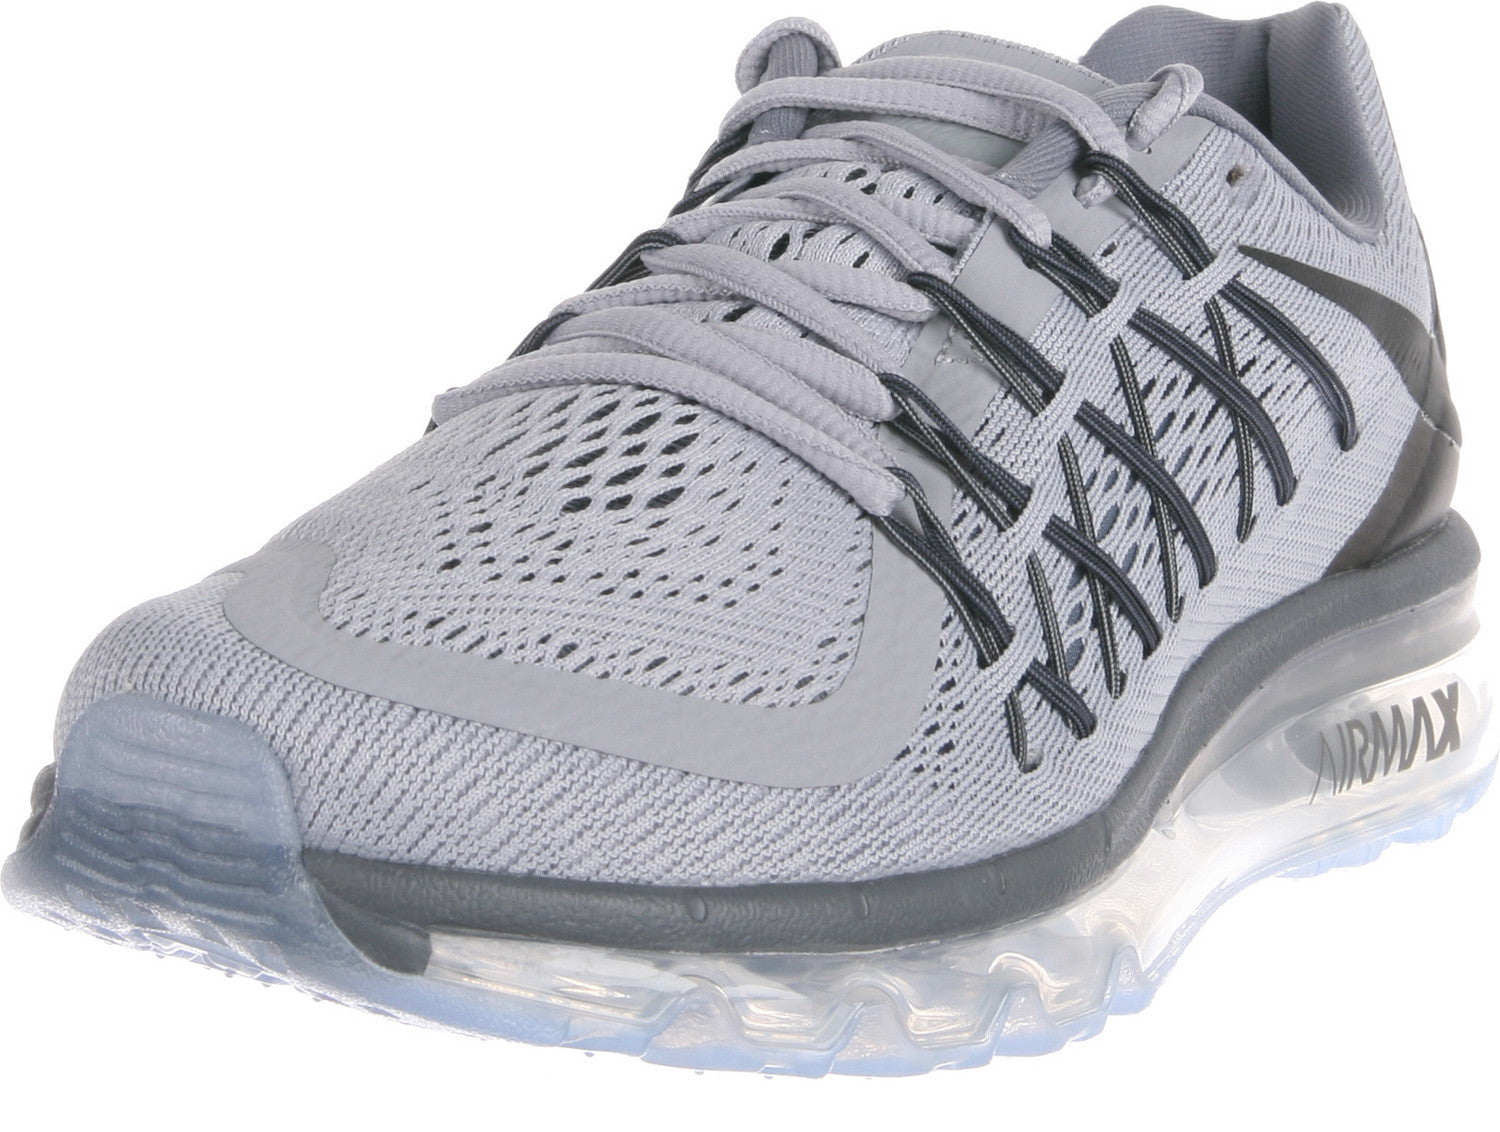 official photos 10297 a0c9a ... NIKE AIR MAX 2015 Mens Running Sneakers 698902-009 ...